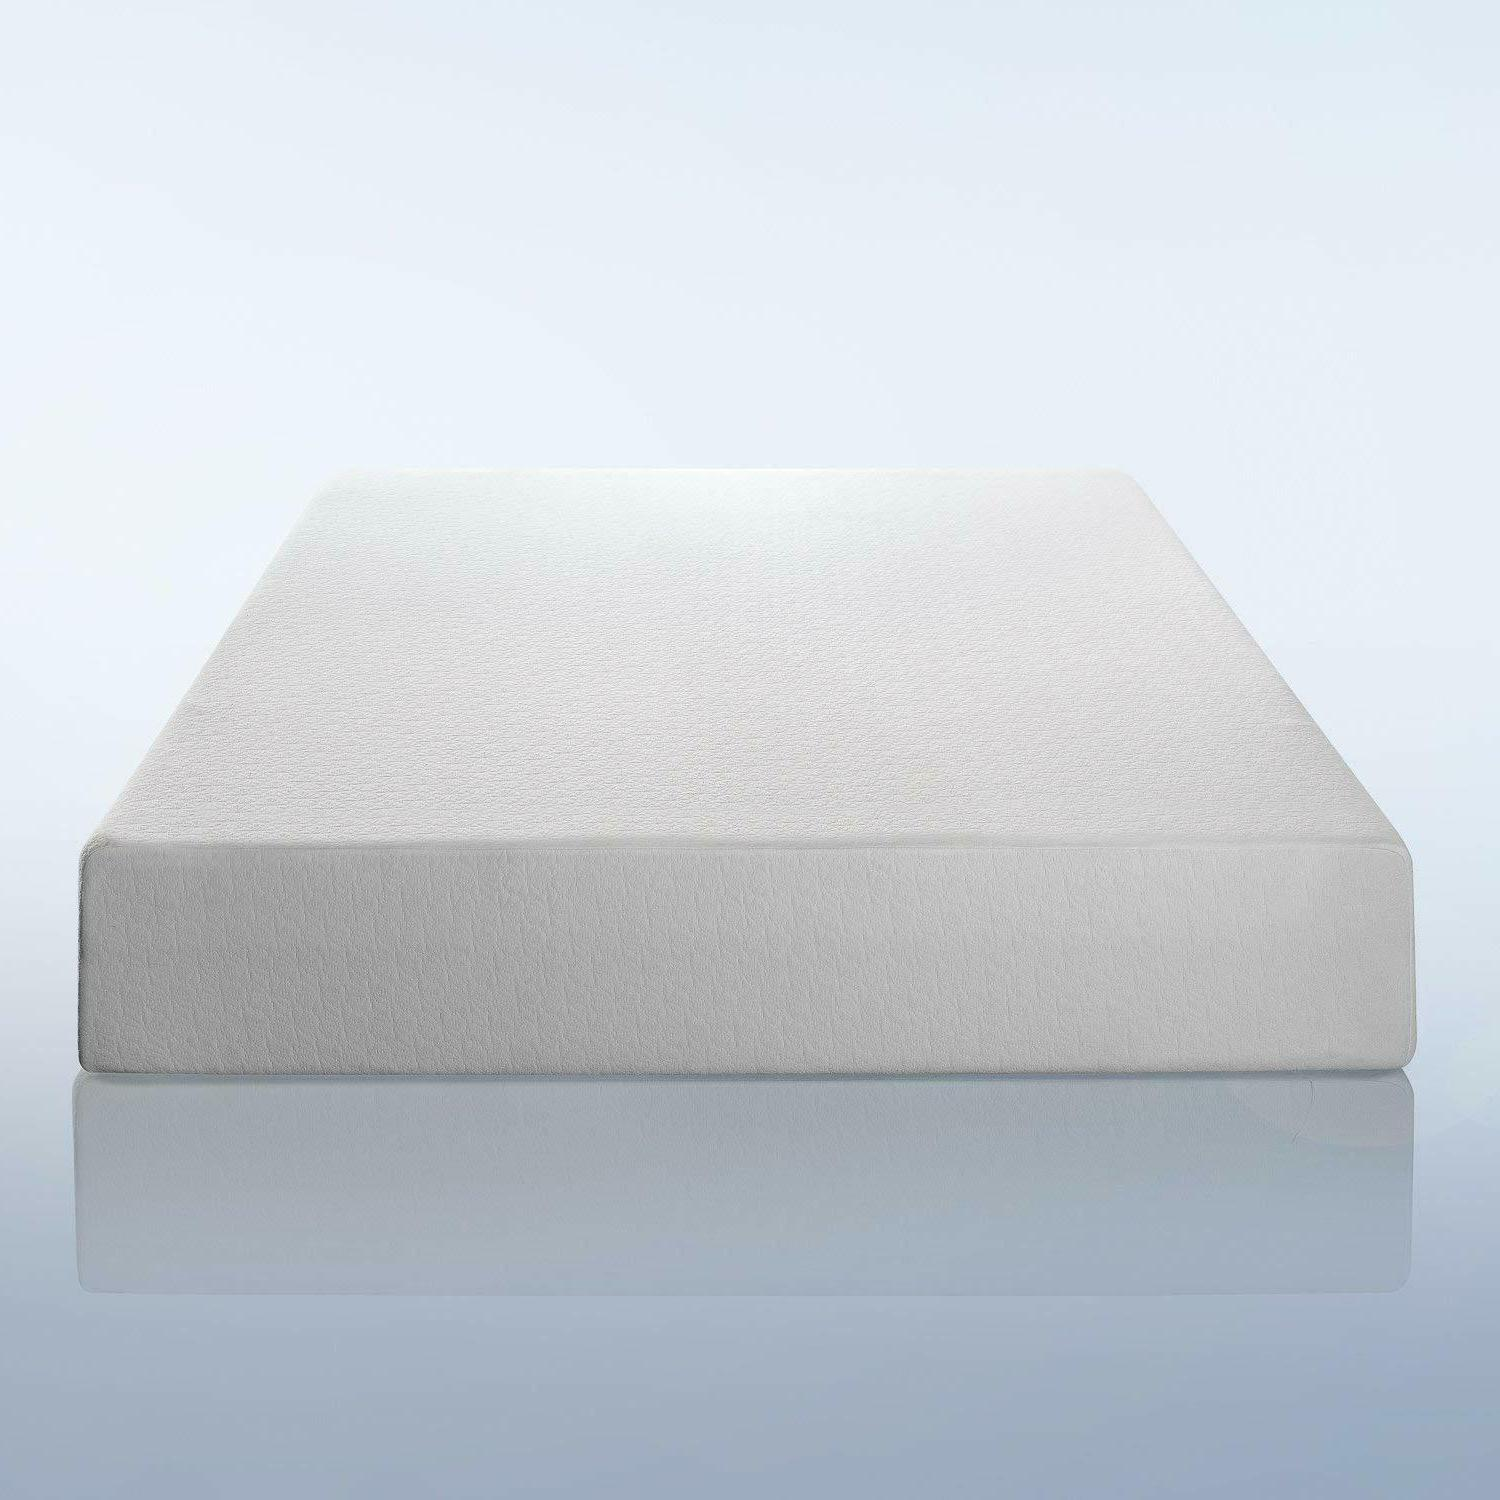 Zinus MEMORY FOAM Full Queen King 6/8/10/12